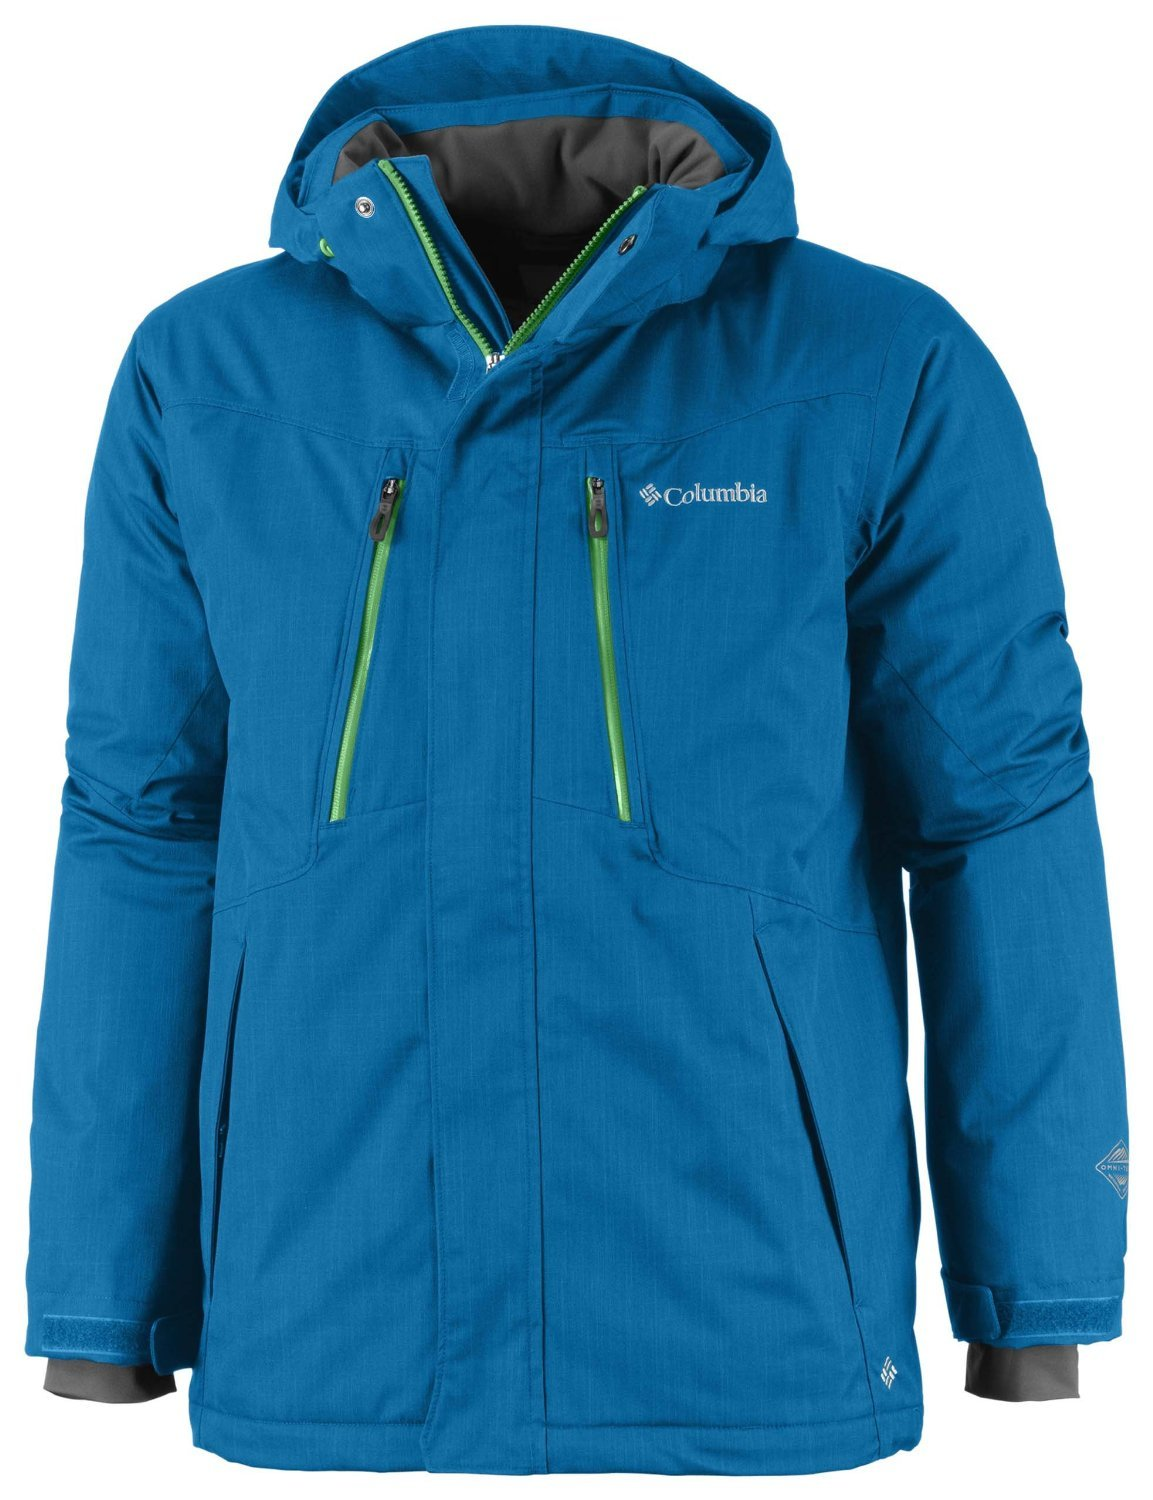 Columbia Men's Alpine Action Jungen Jacke XX-Large Blau - Compass Blue Melange